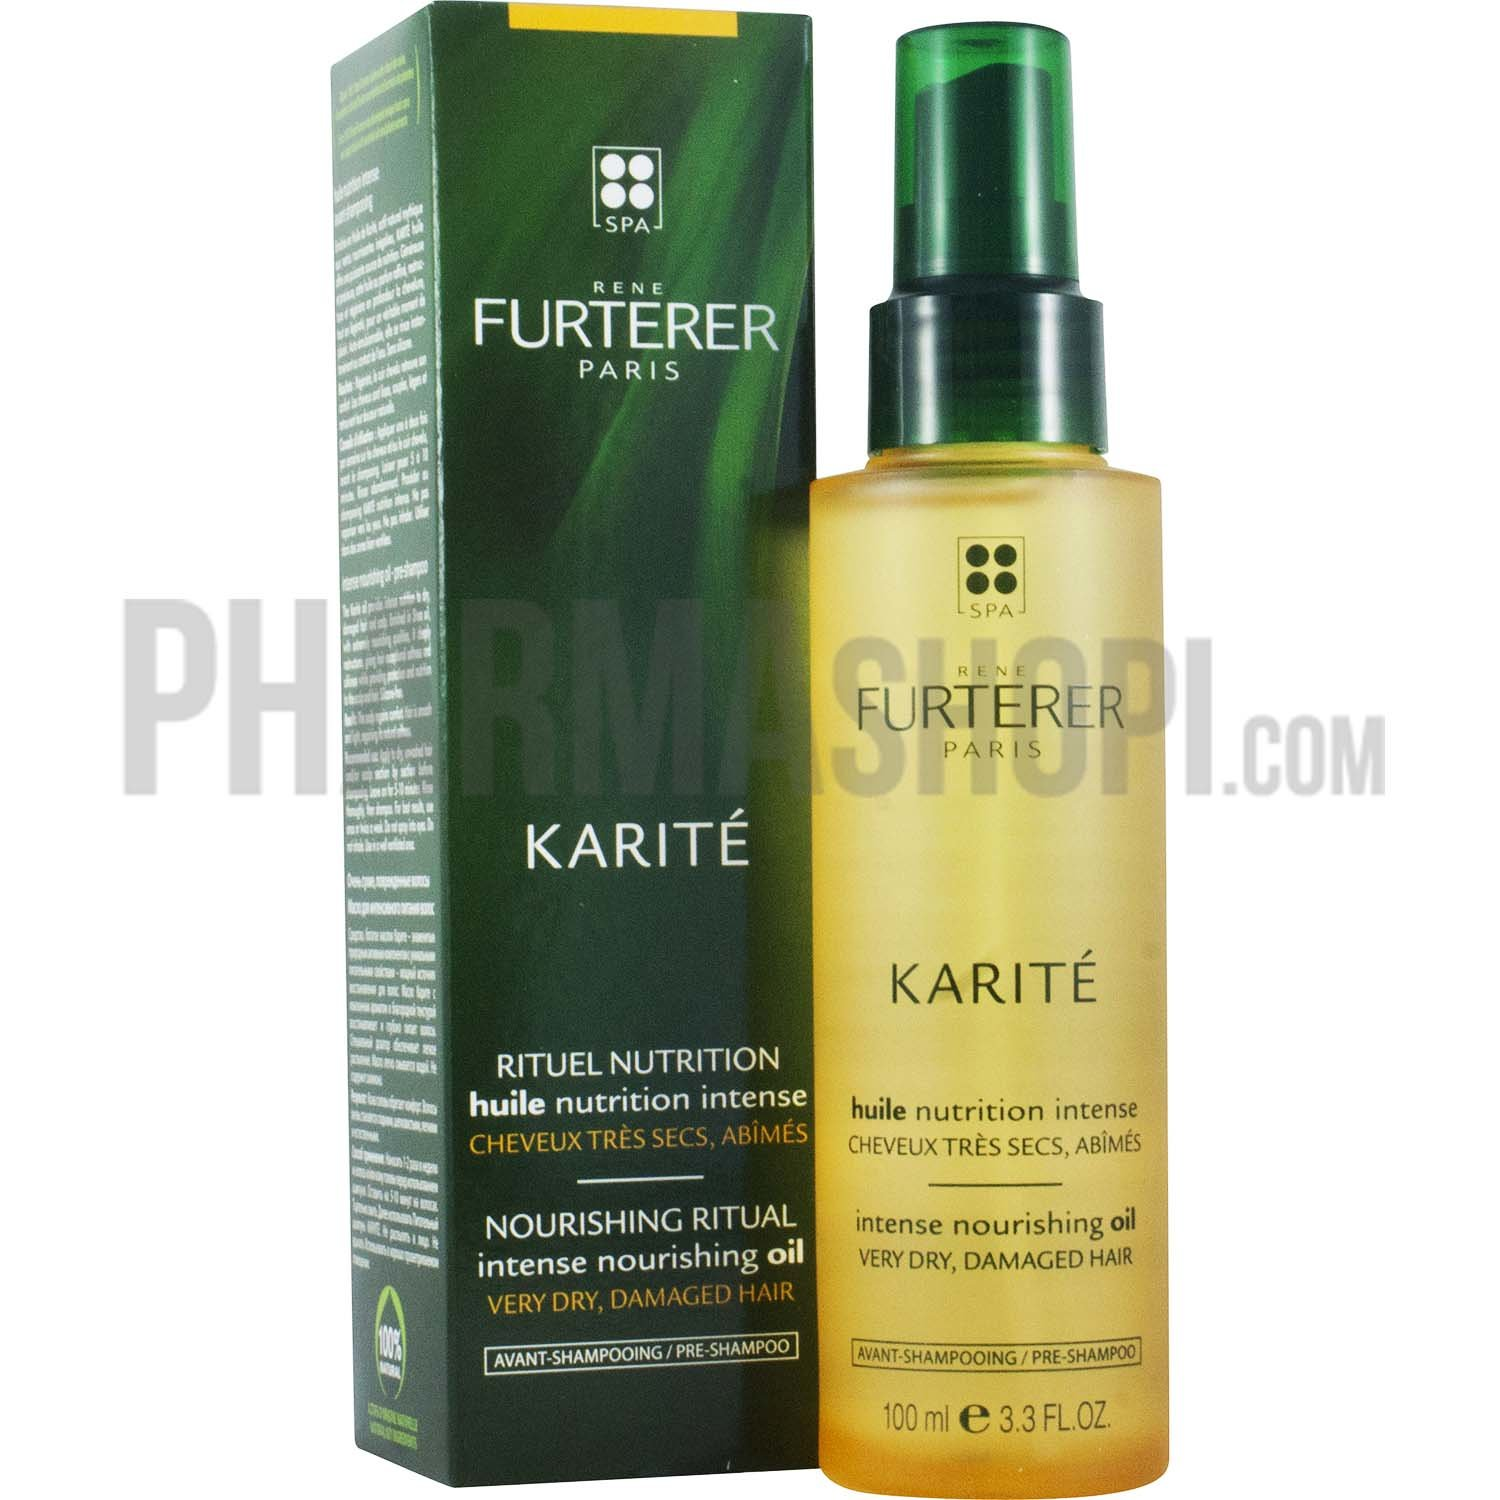 karit rituel nutrition huile nutrition intense ren furterer flacon de 100 ml. Black Bedroom Furniture Sets. Home Design Ideas